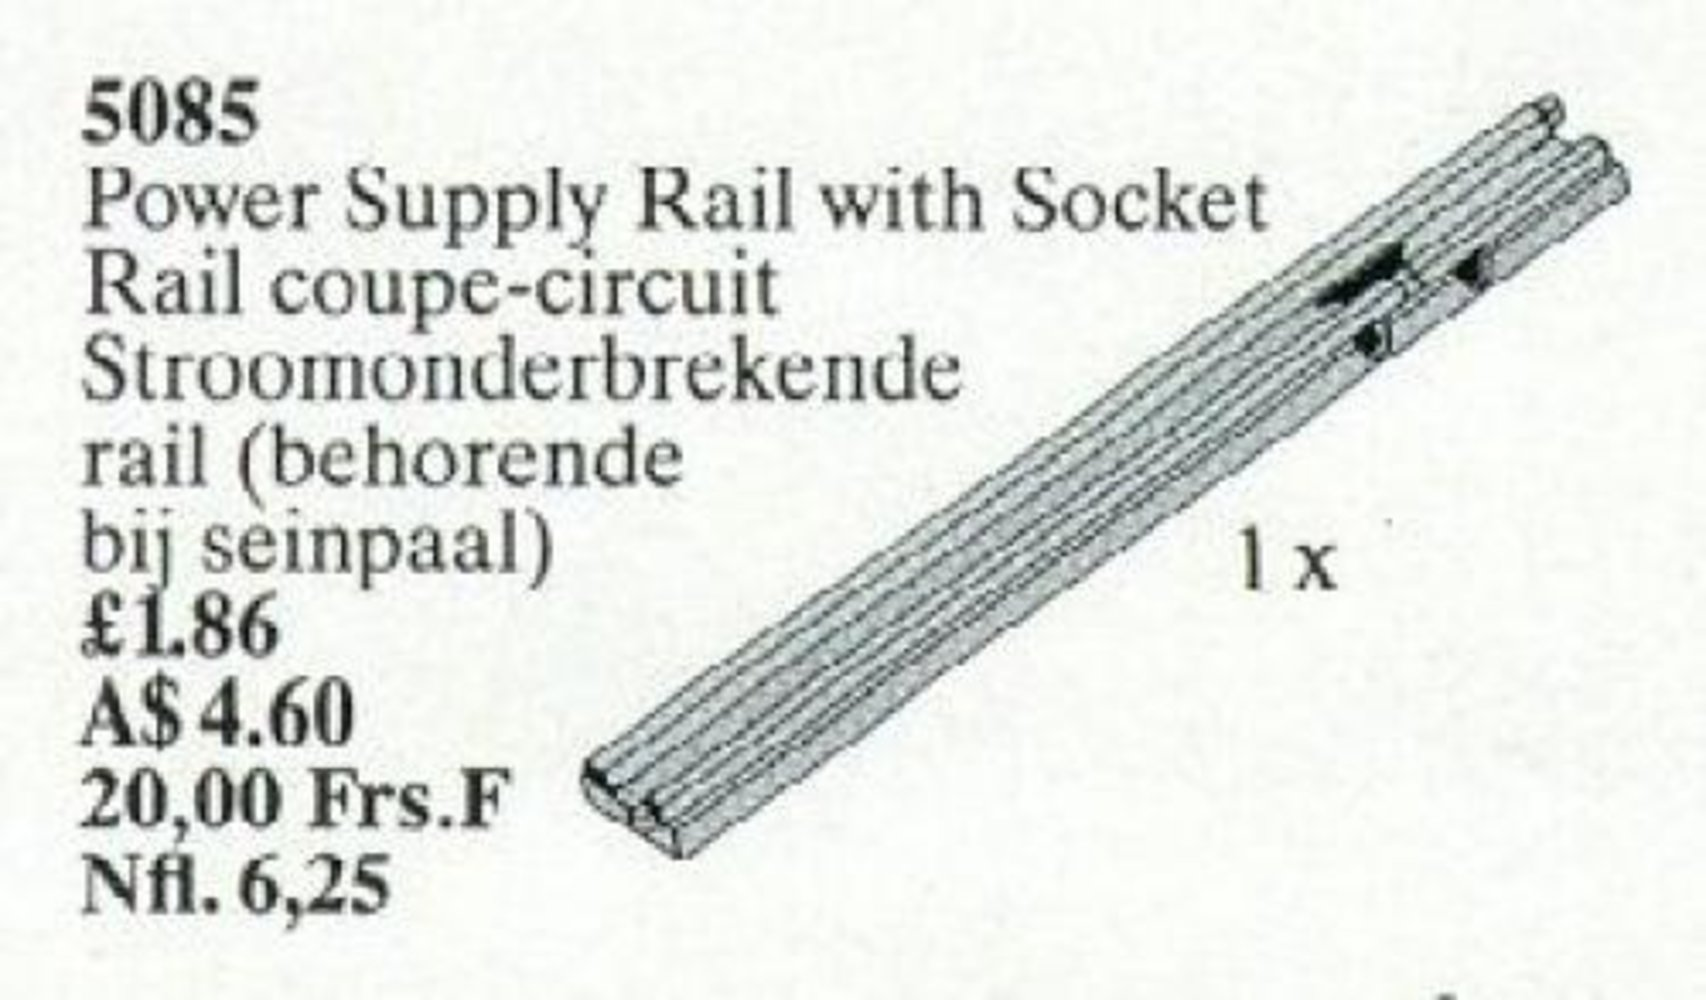 Power Supply Rail with Socket